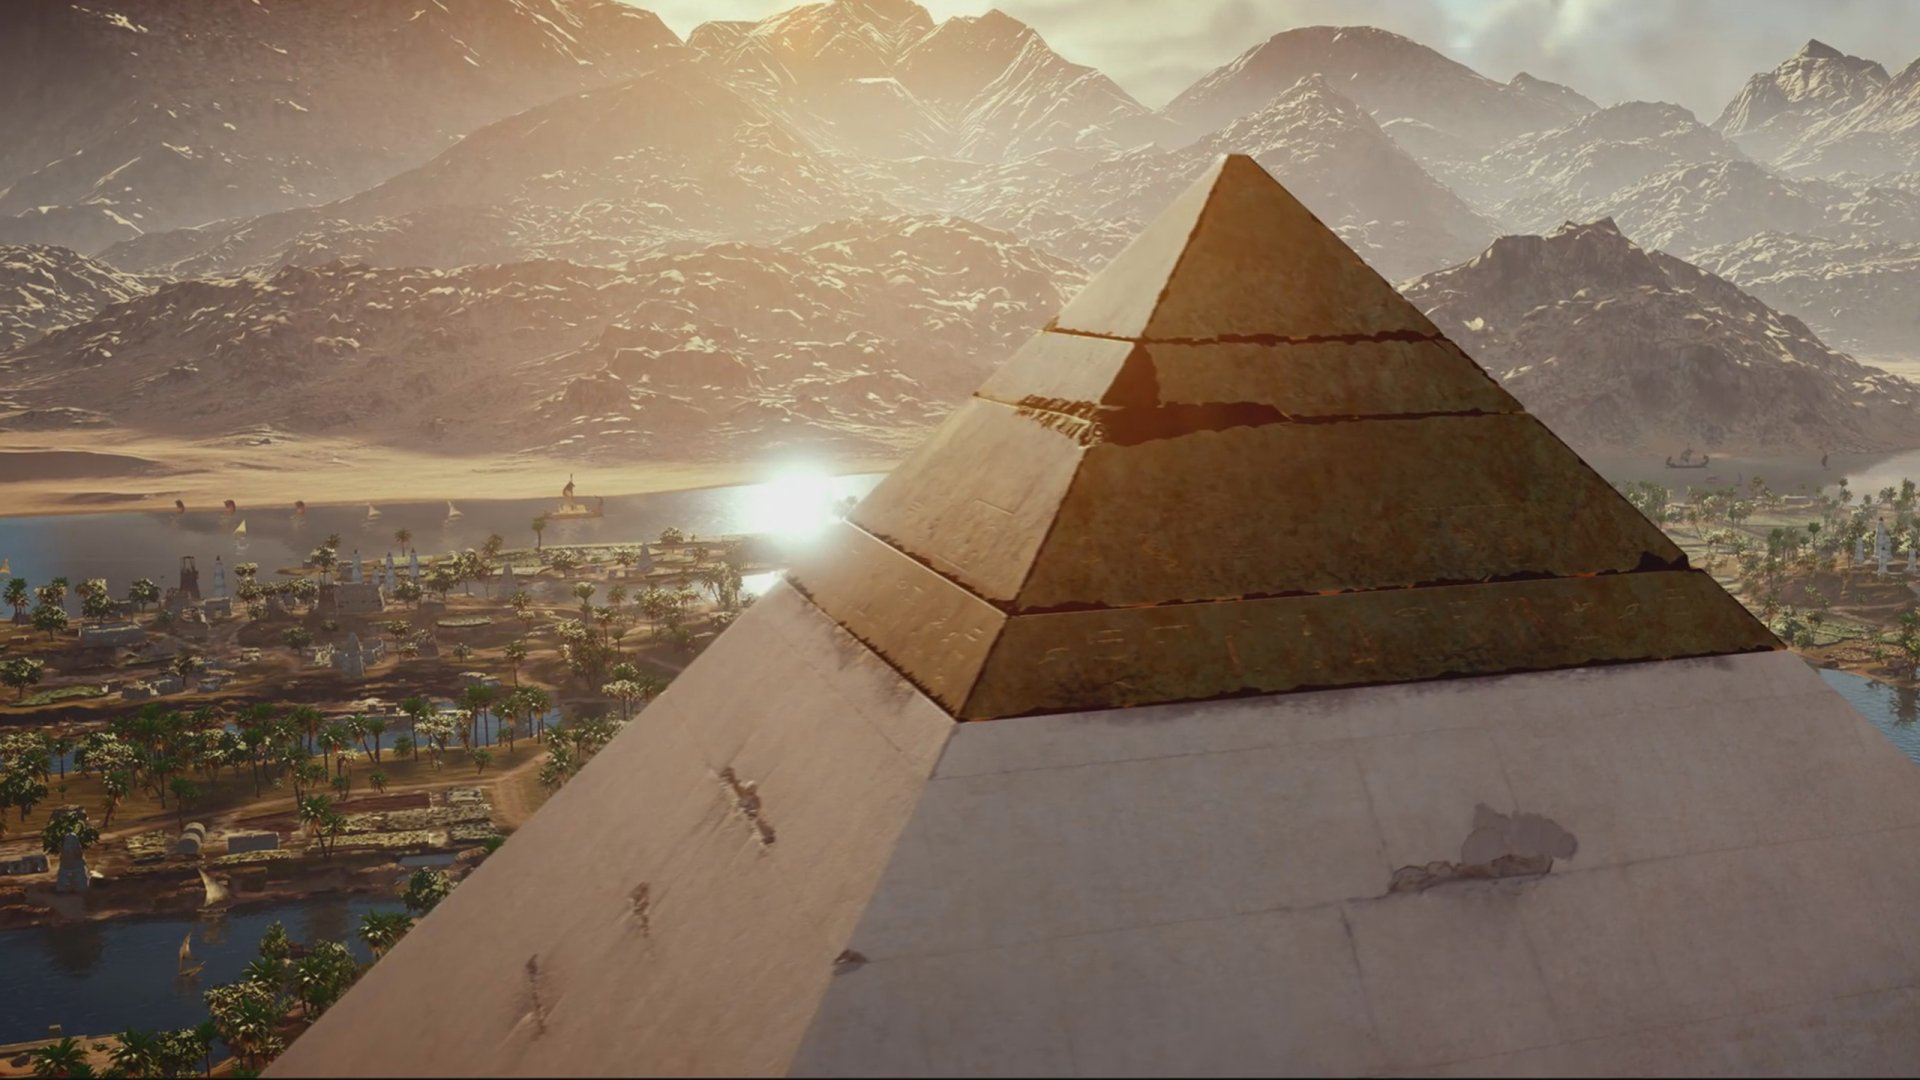 Egypt Pyramids Hd Wallpapers Pyramid Hd Wallpaper Background Image 2560x1440 Id